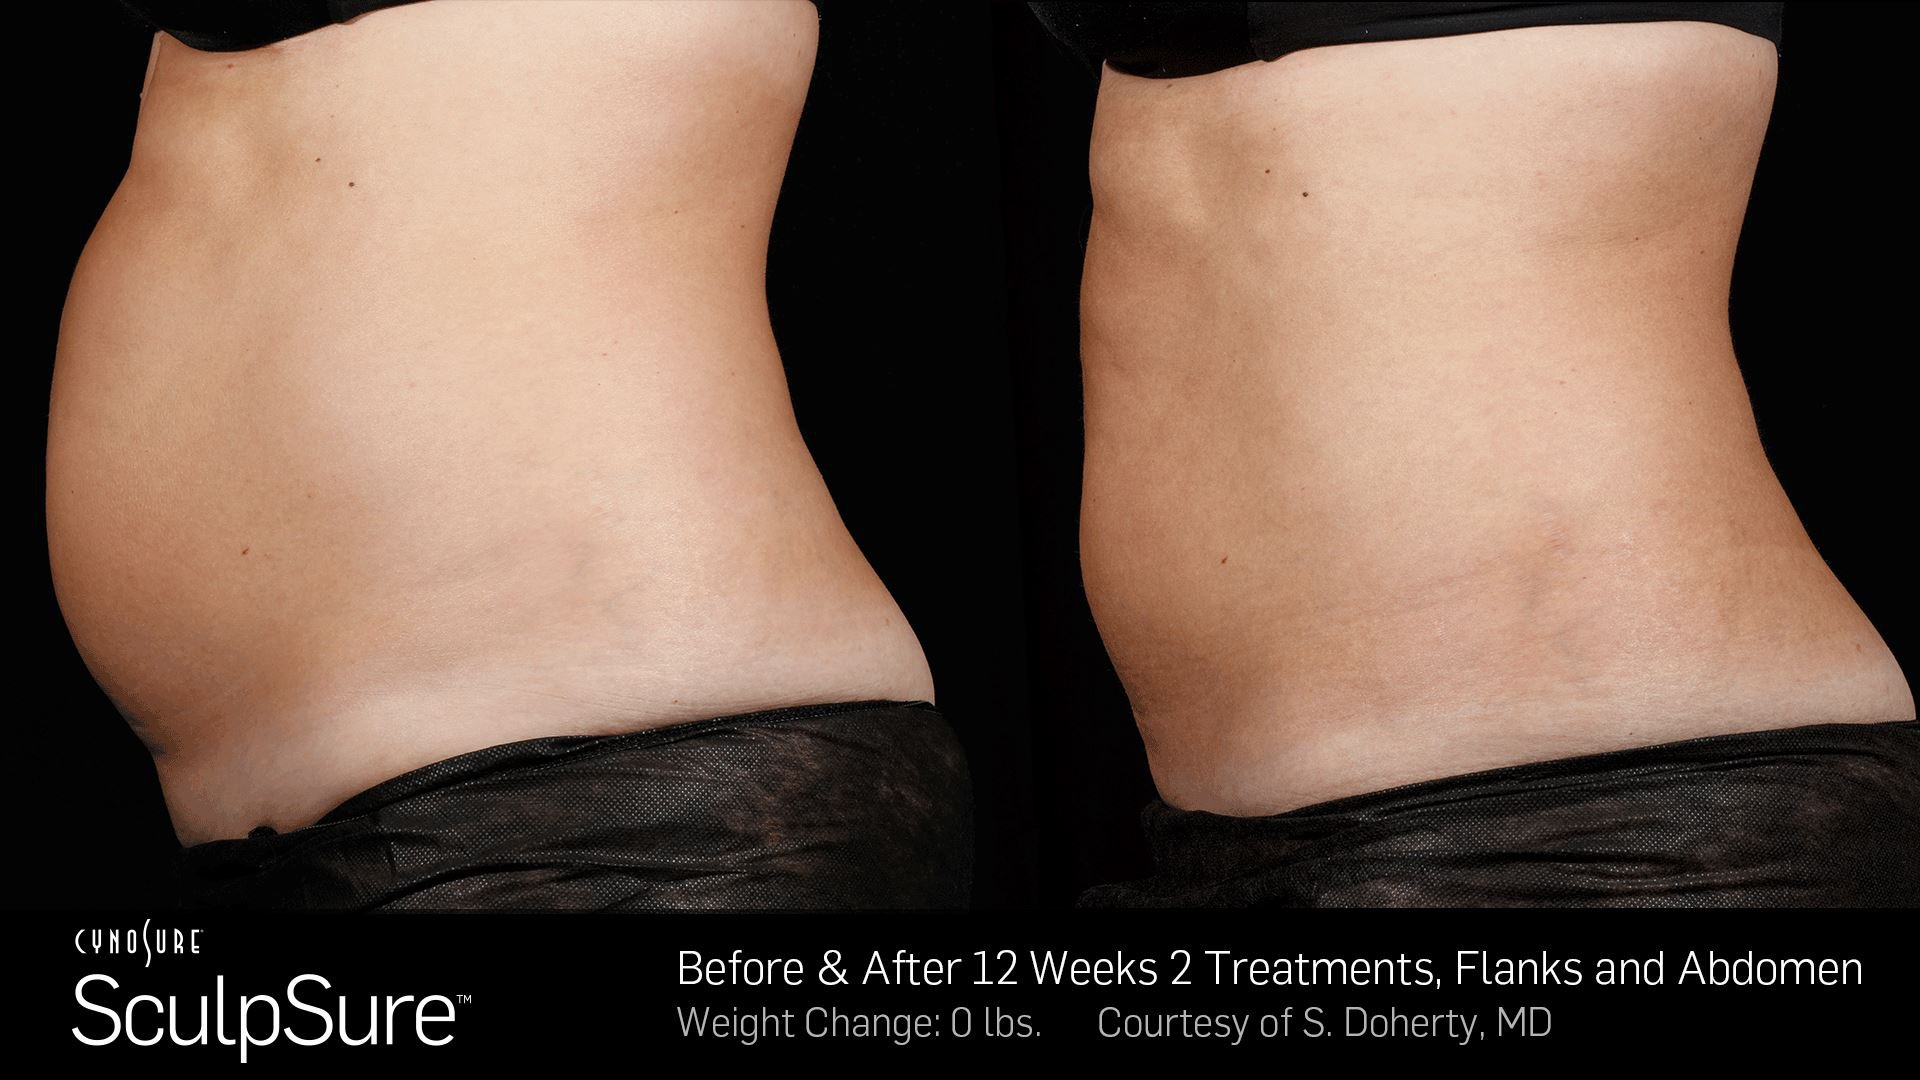 Sculpsure fat reduction treatment in Fairfield